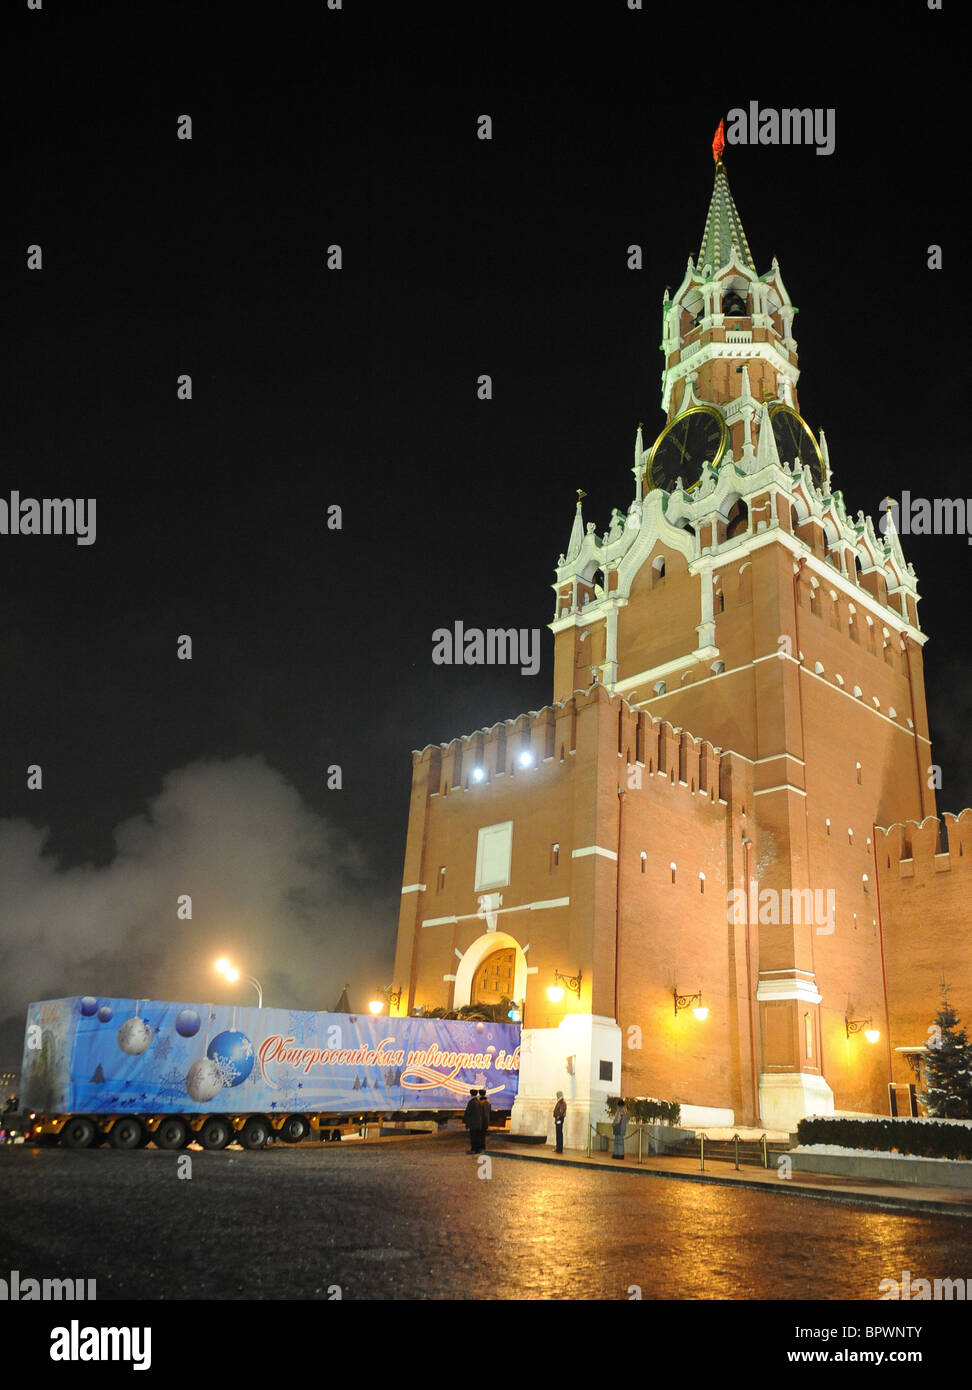 Russia's main Christmas tree arrives at Kremlin - Stock Image